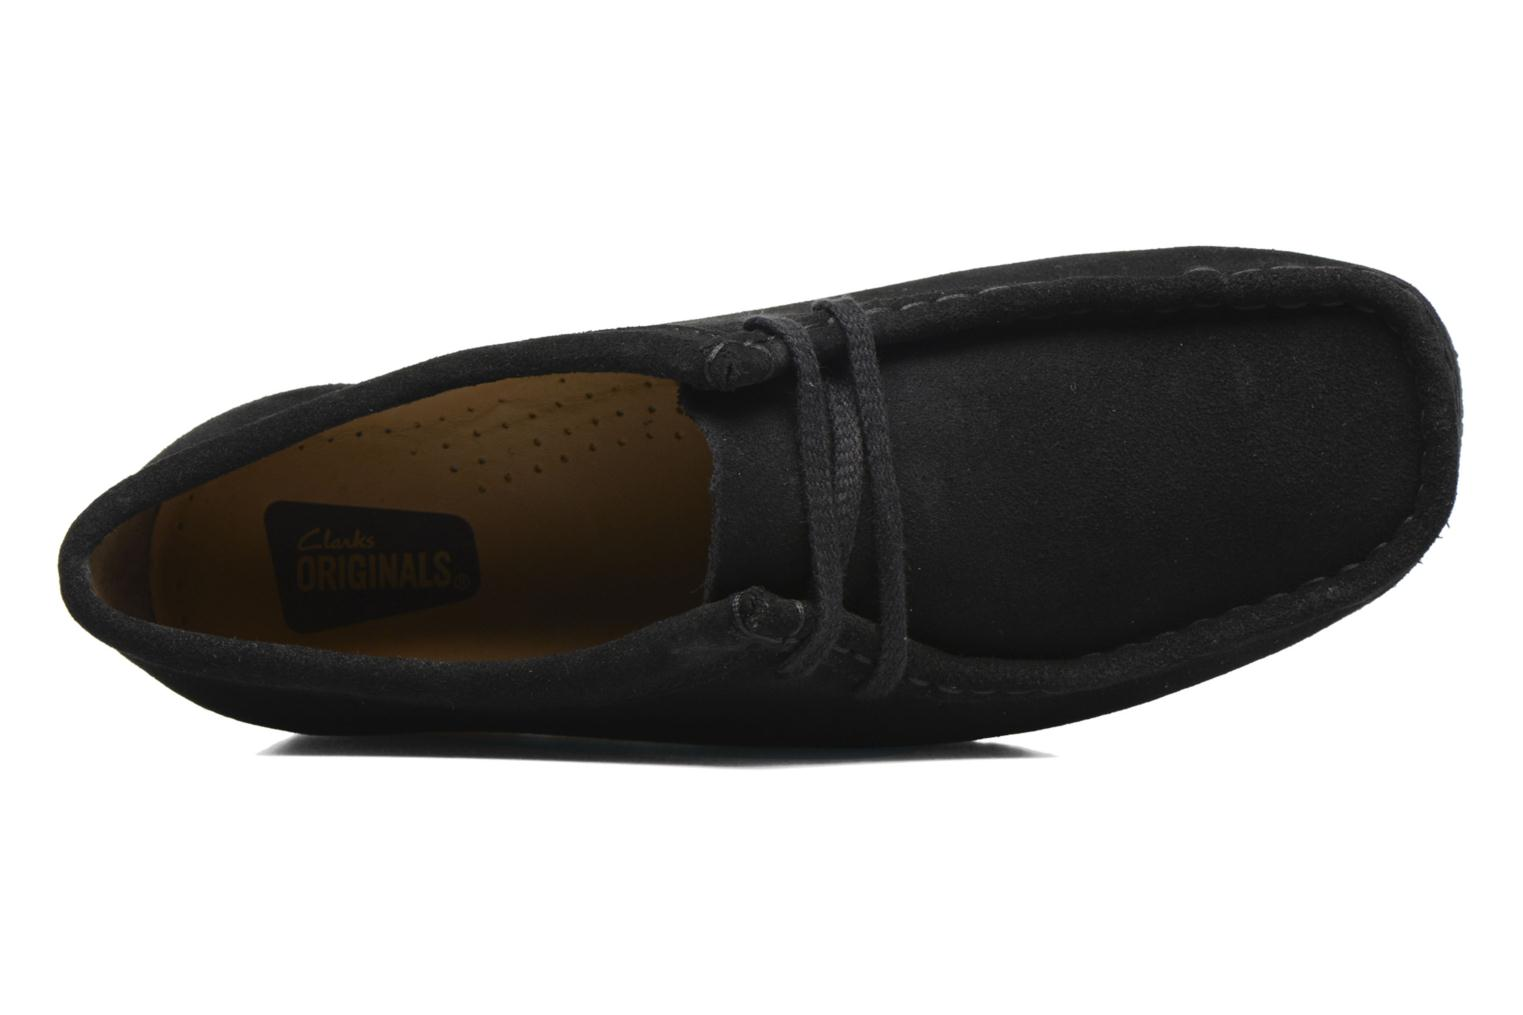 Lace-up shoes Clarks Originals Wallabee W Black view from the left